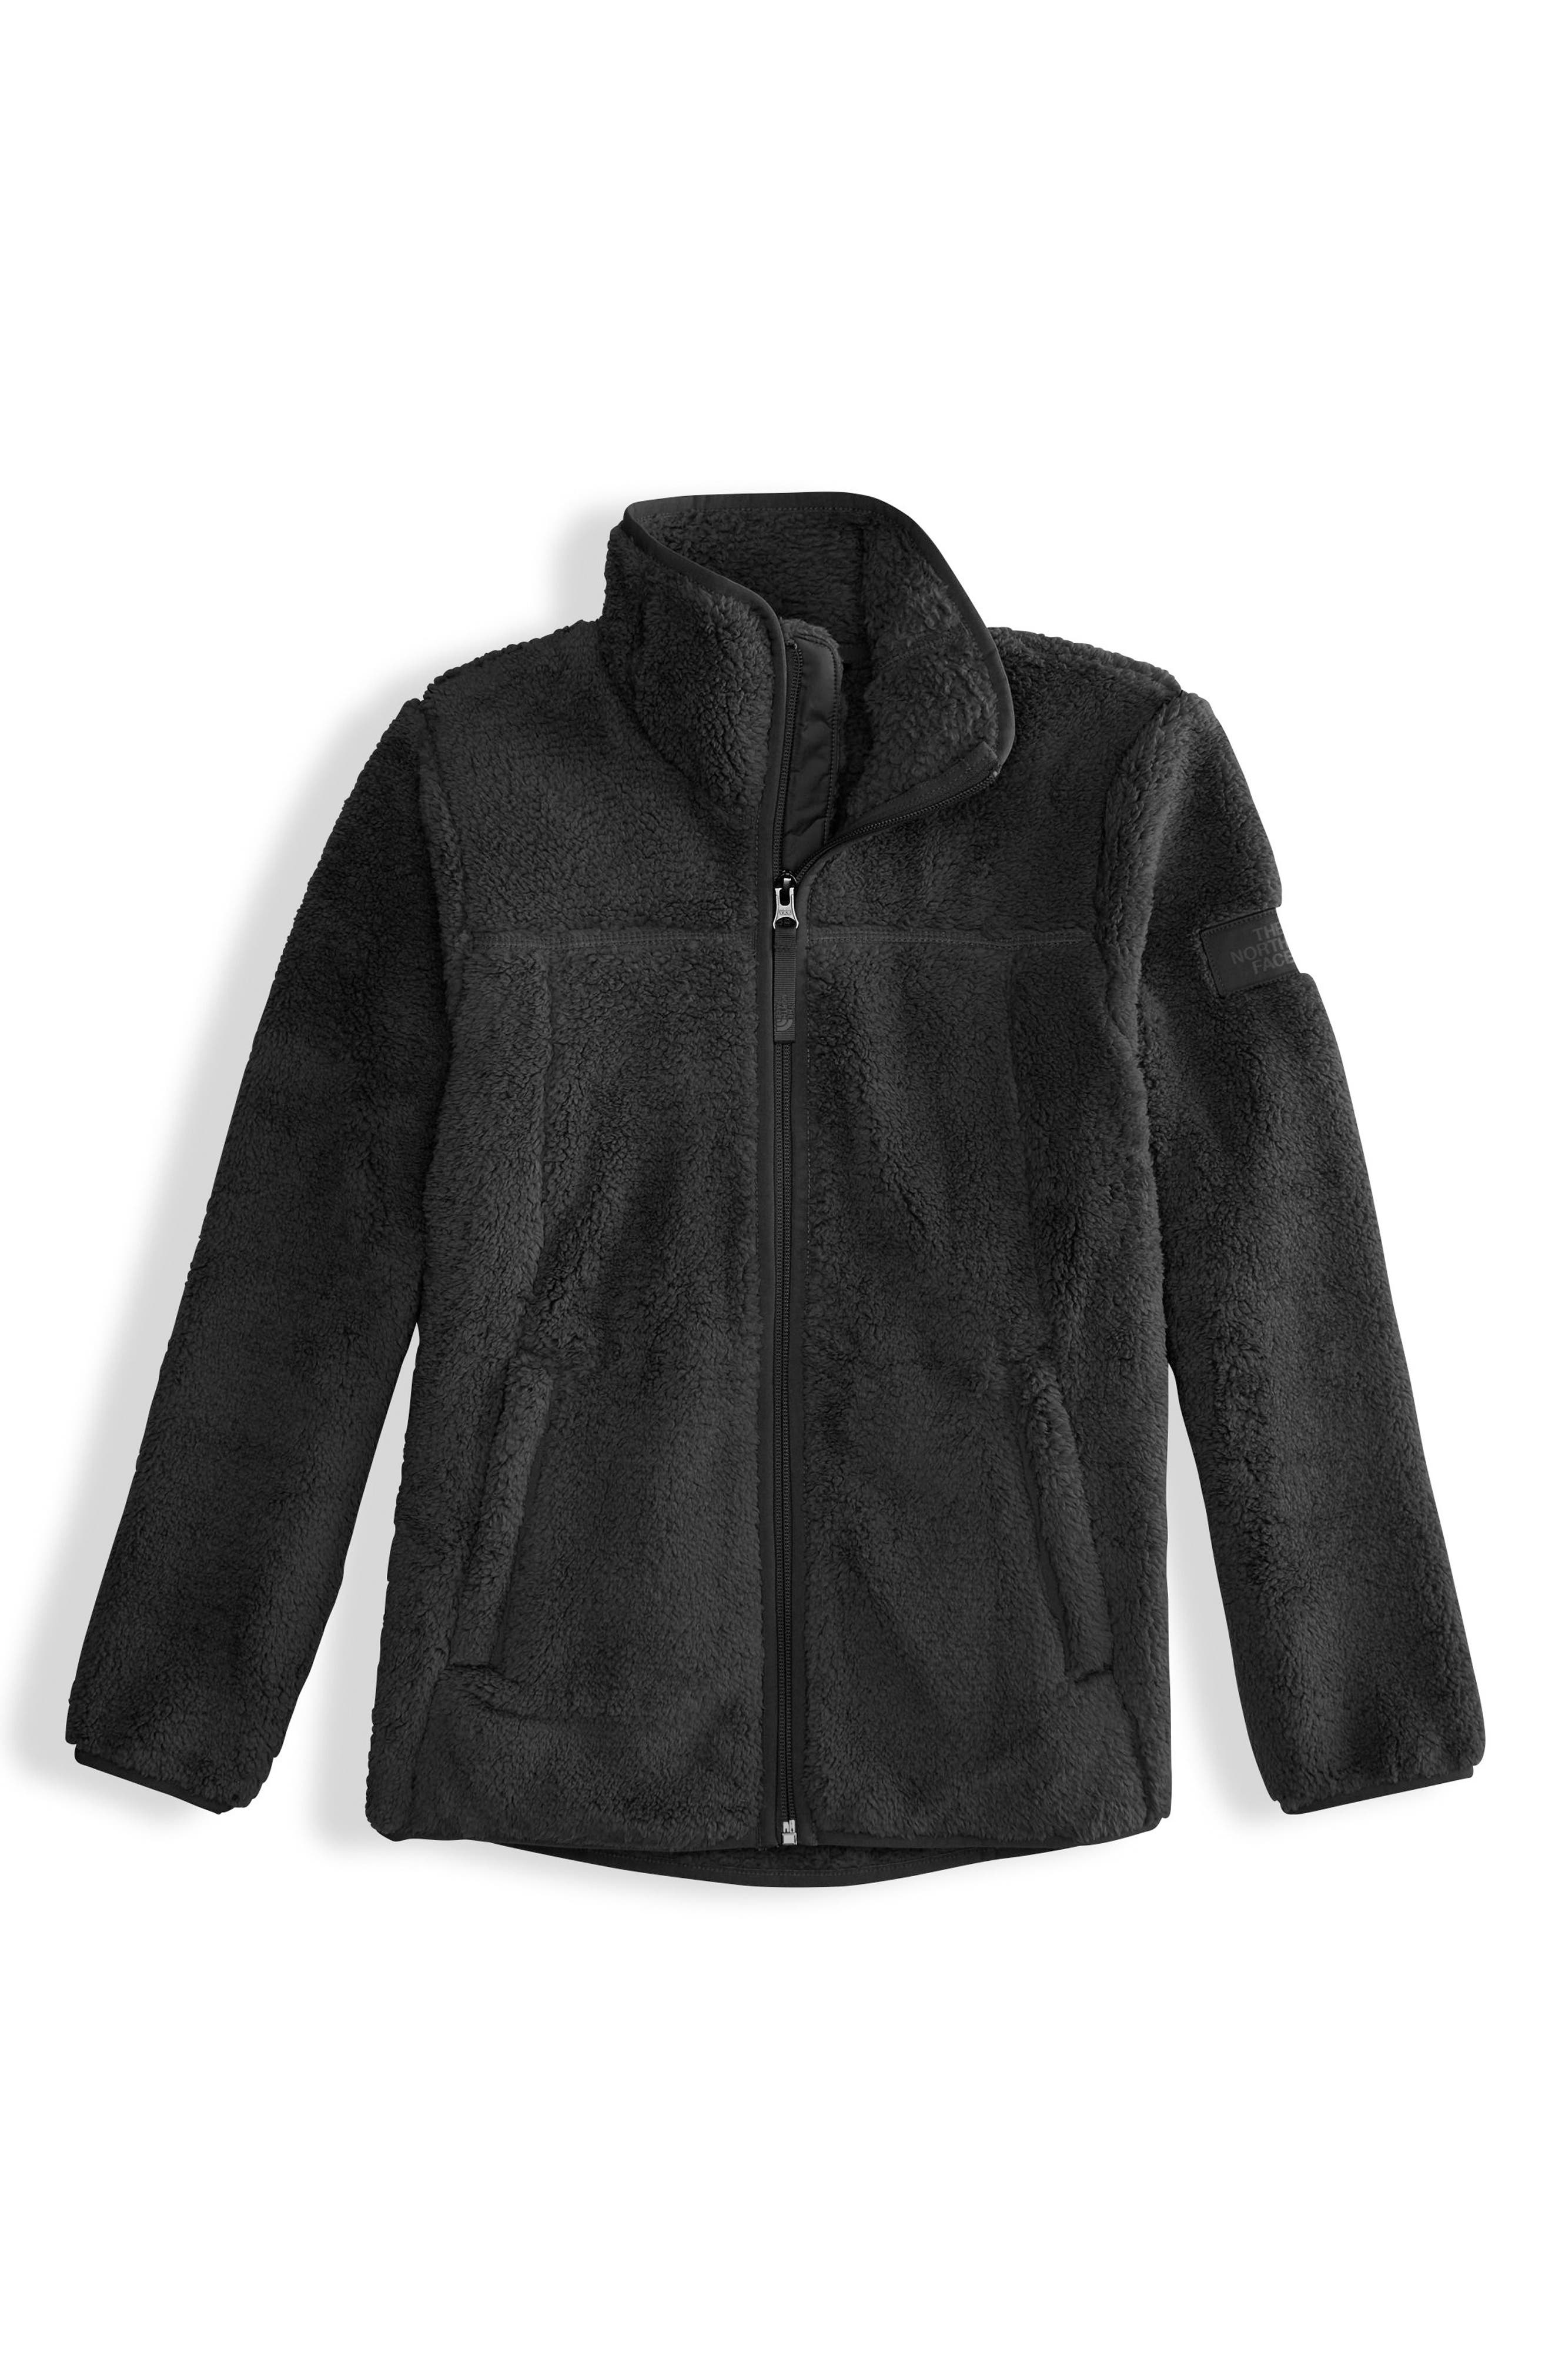 Campshire Fleece Jacket,                             Main thumbnail 1, color,                             TNF BLACK